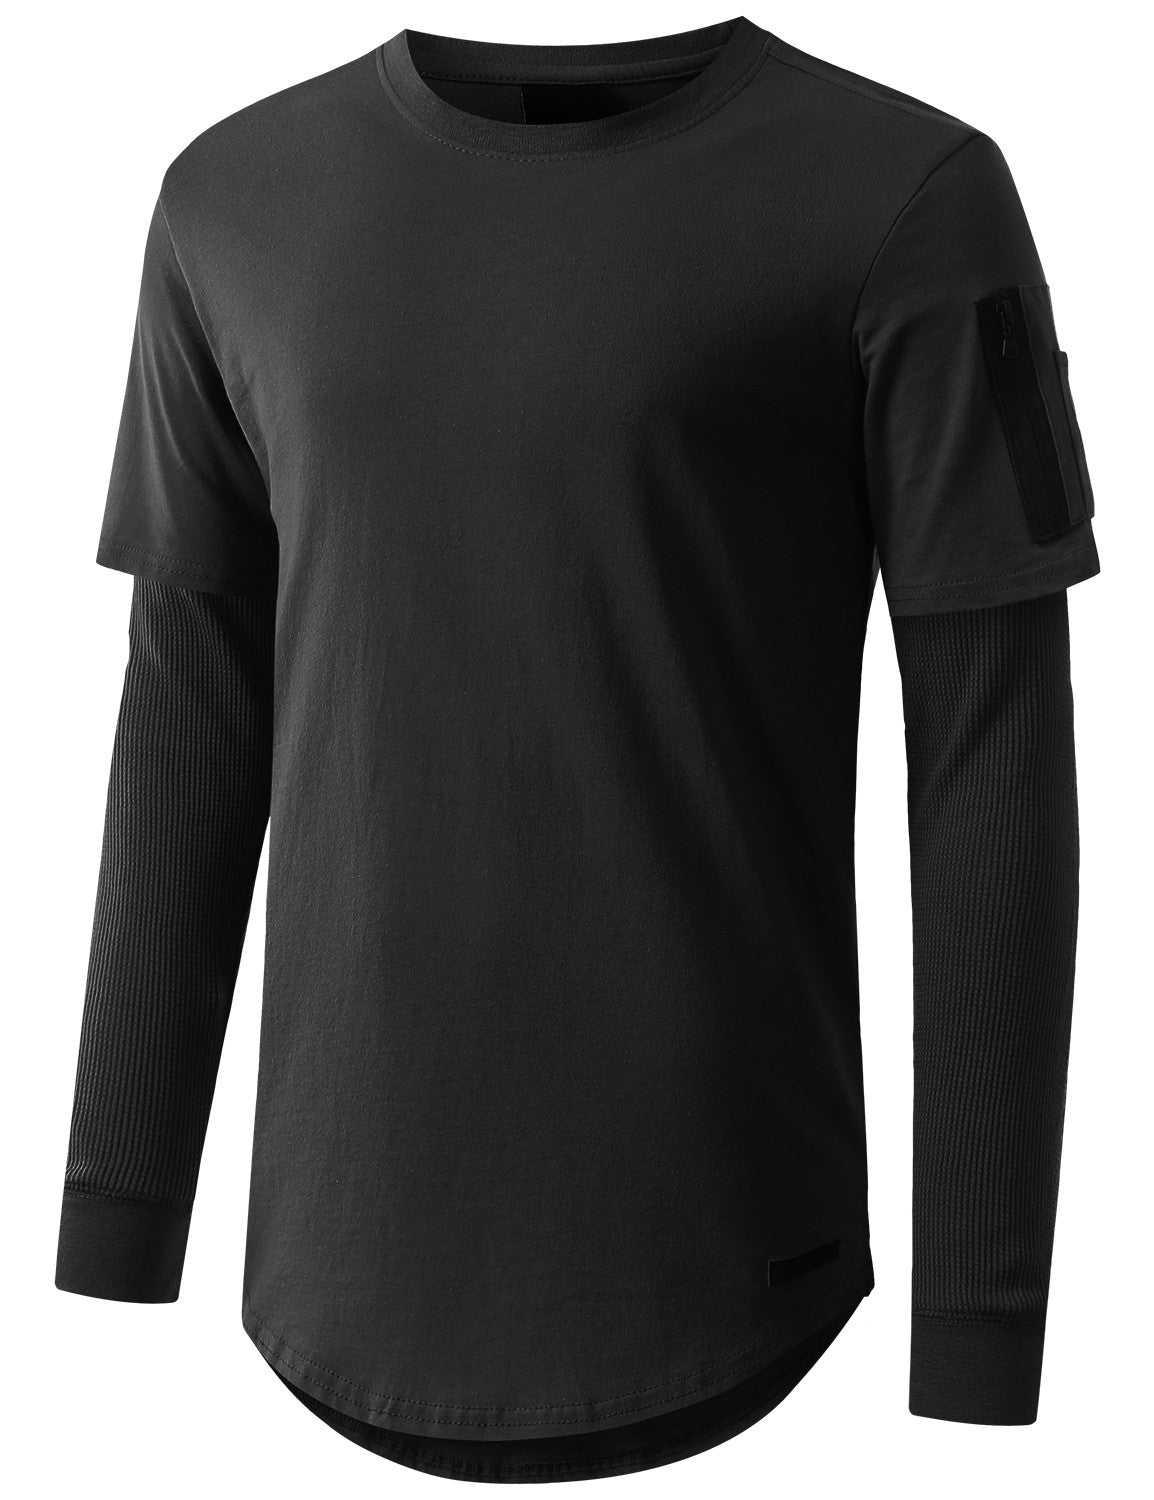 BLACK Thermal Sleeved Long Sleeve Tshirt - URBANCREWS